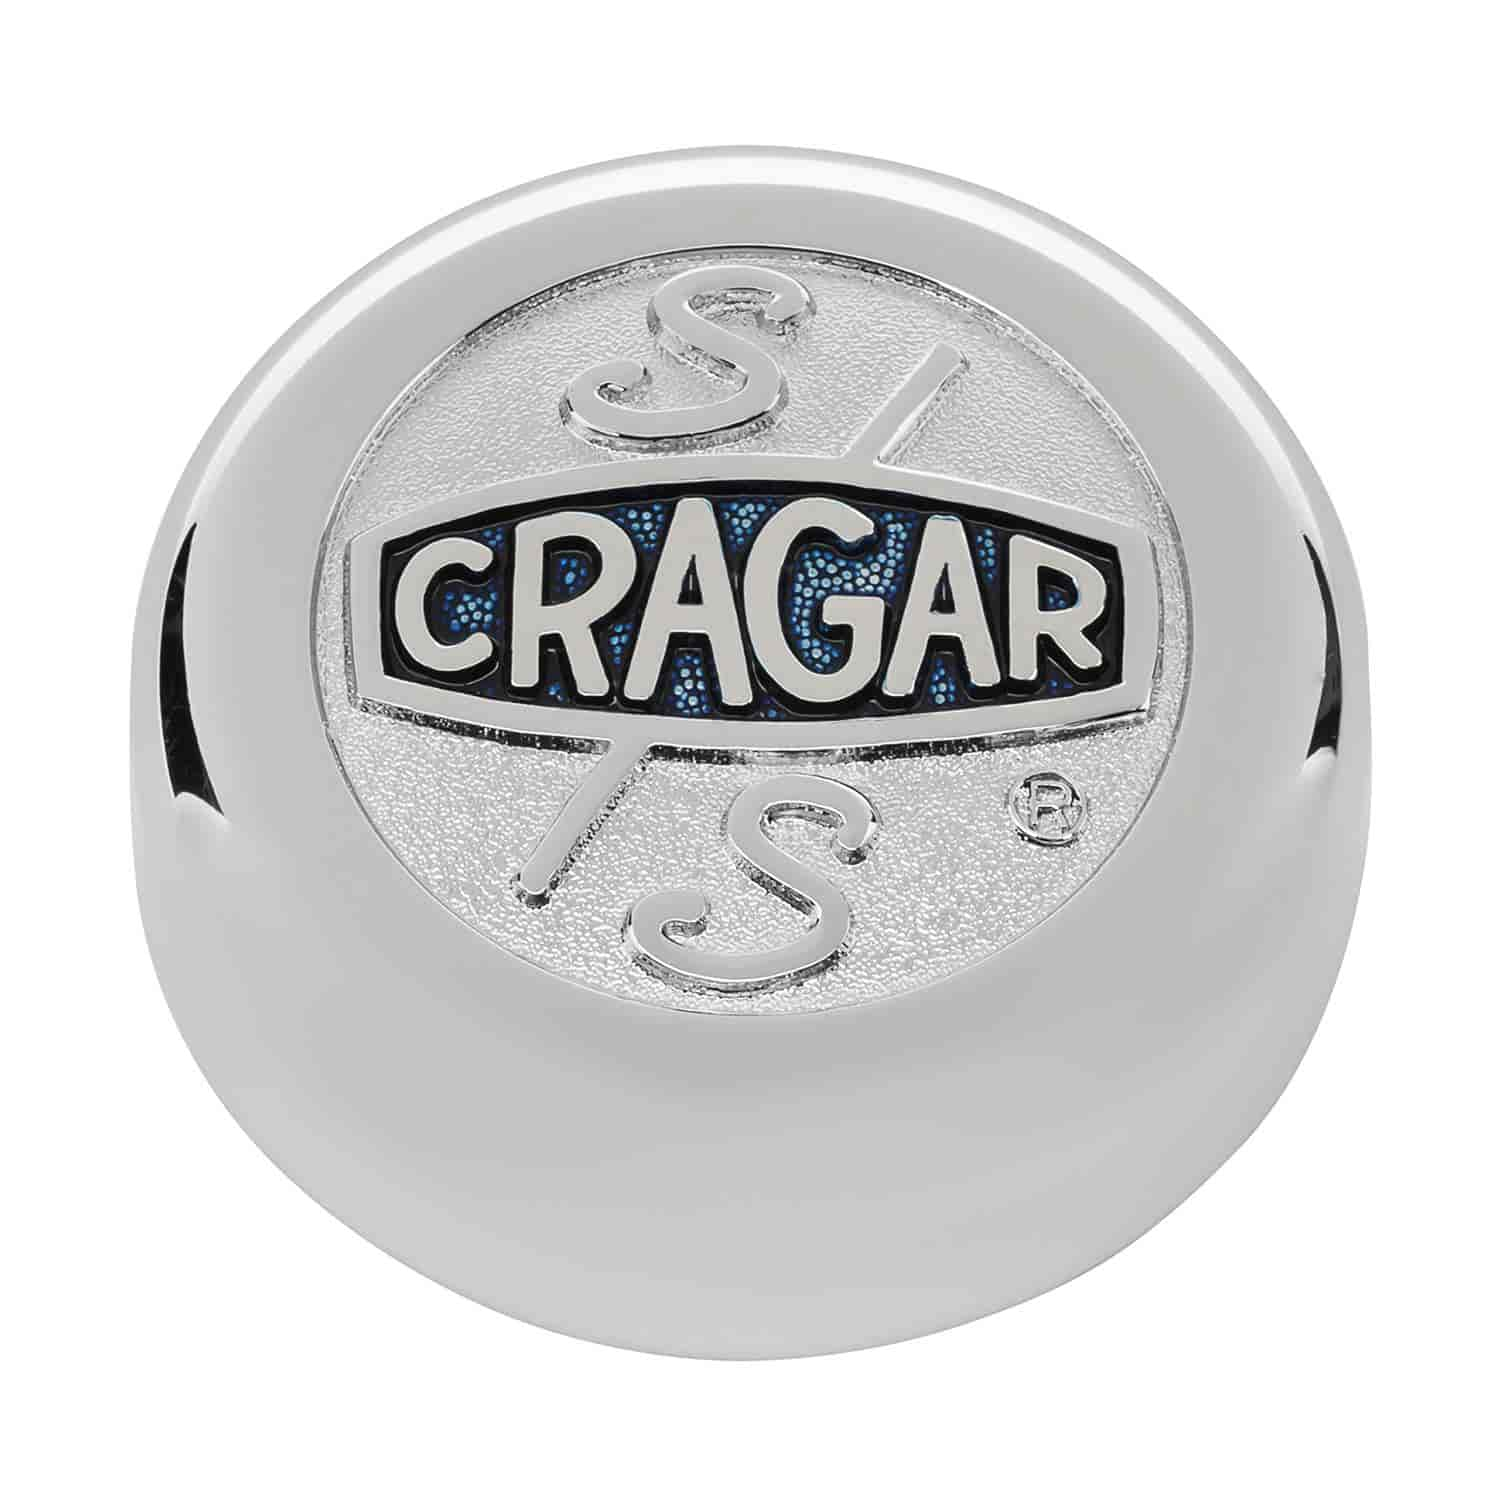 Cragar 29025-1 - Cragar Wheel Center Caps